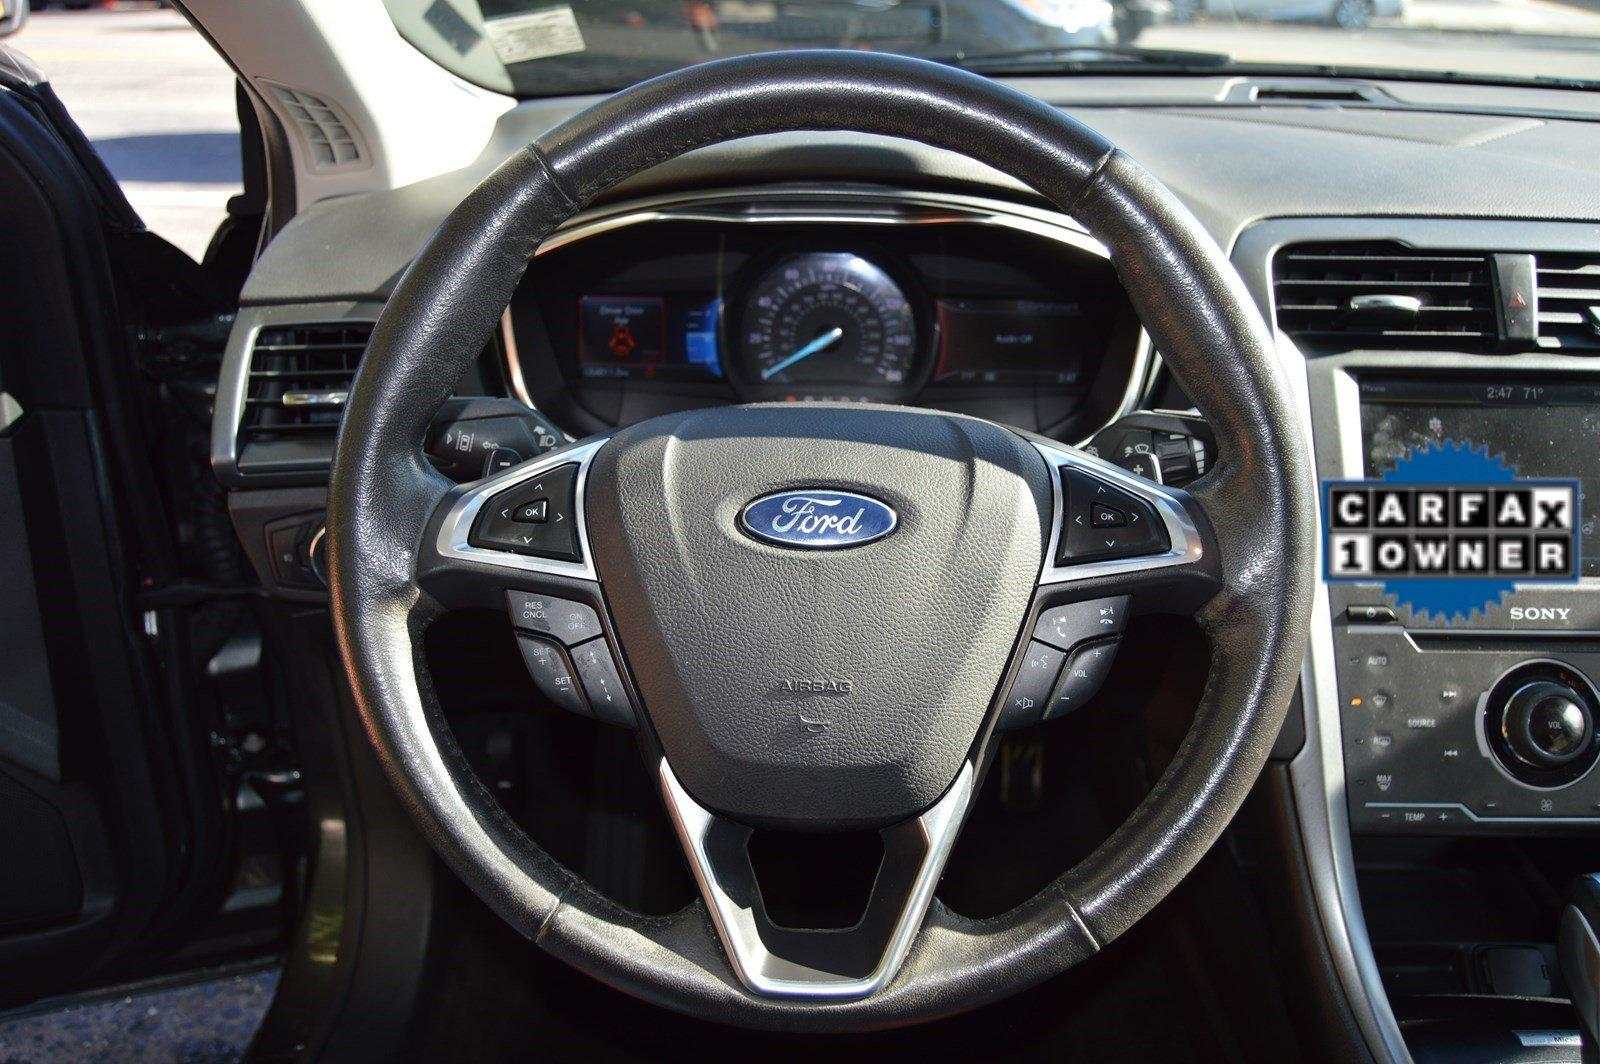 Interior Ford Fusion 2016 Ford Fusion Interior Dimensions Image Of Ruostejarvi Org File Ford